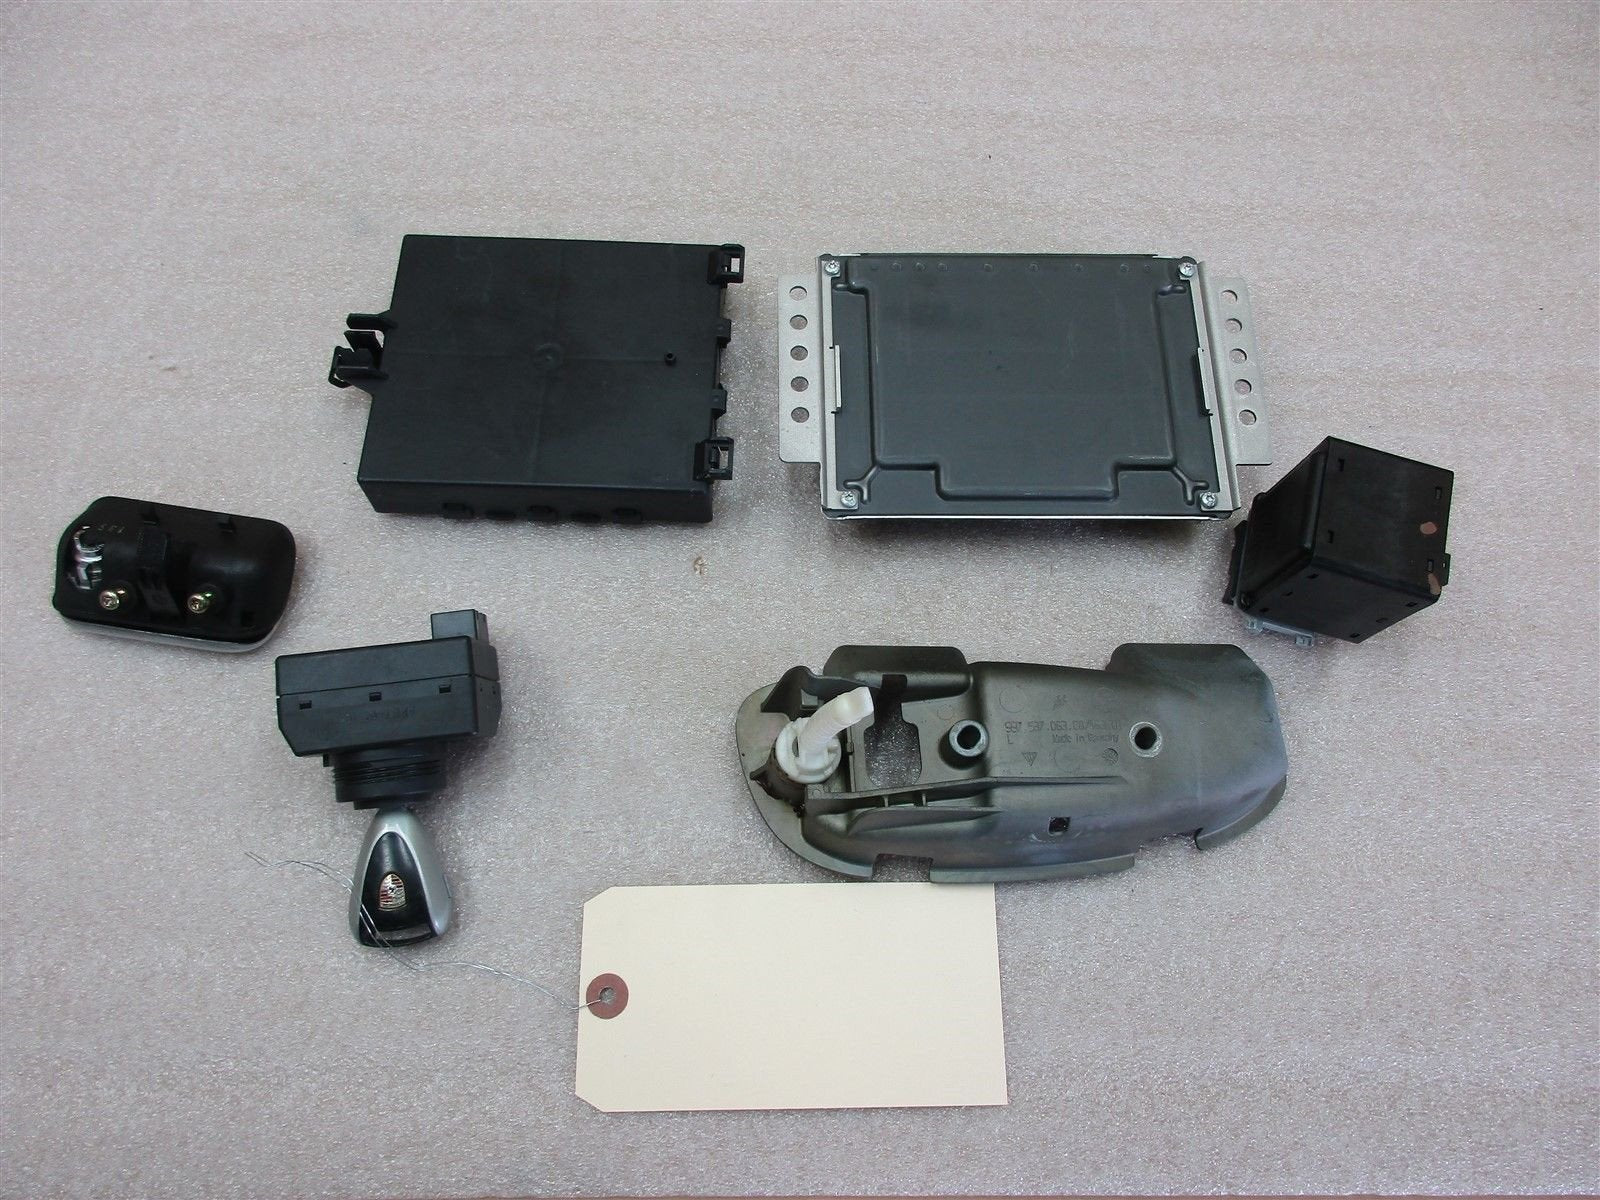 05 Boxster Porsche KEY IMMOBILISER SET ENGINE COMPUTER 99761860302 74,127